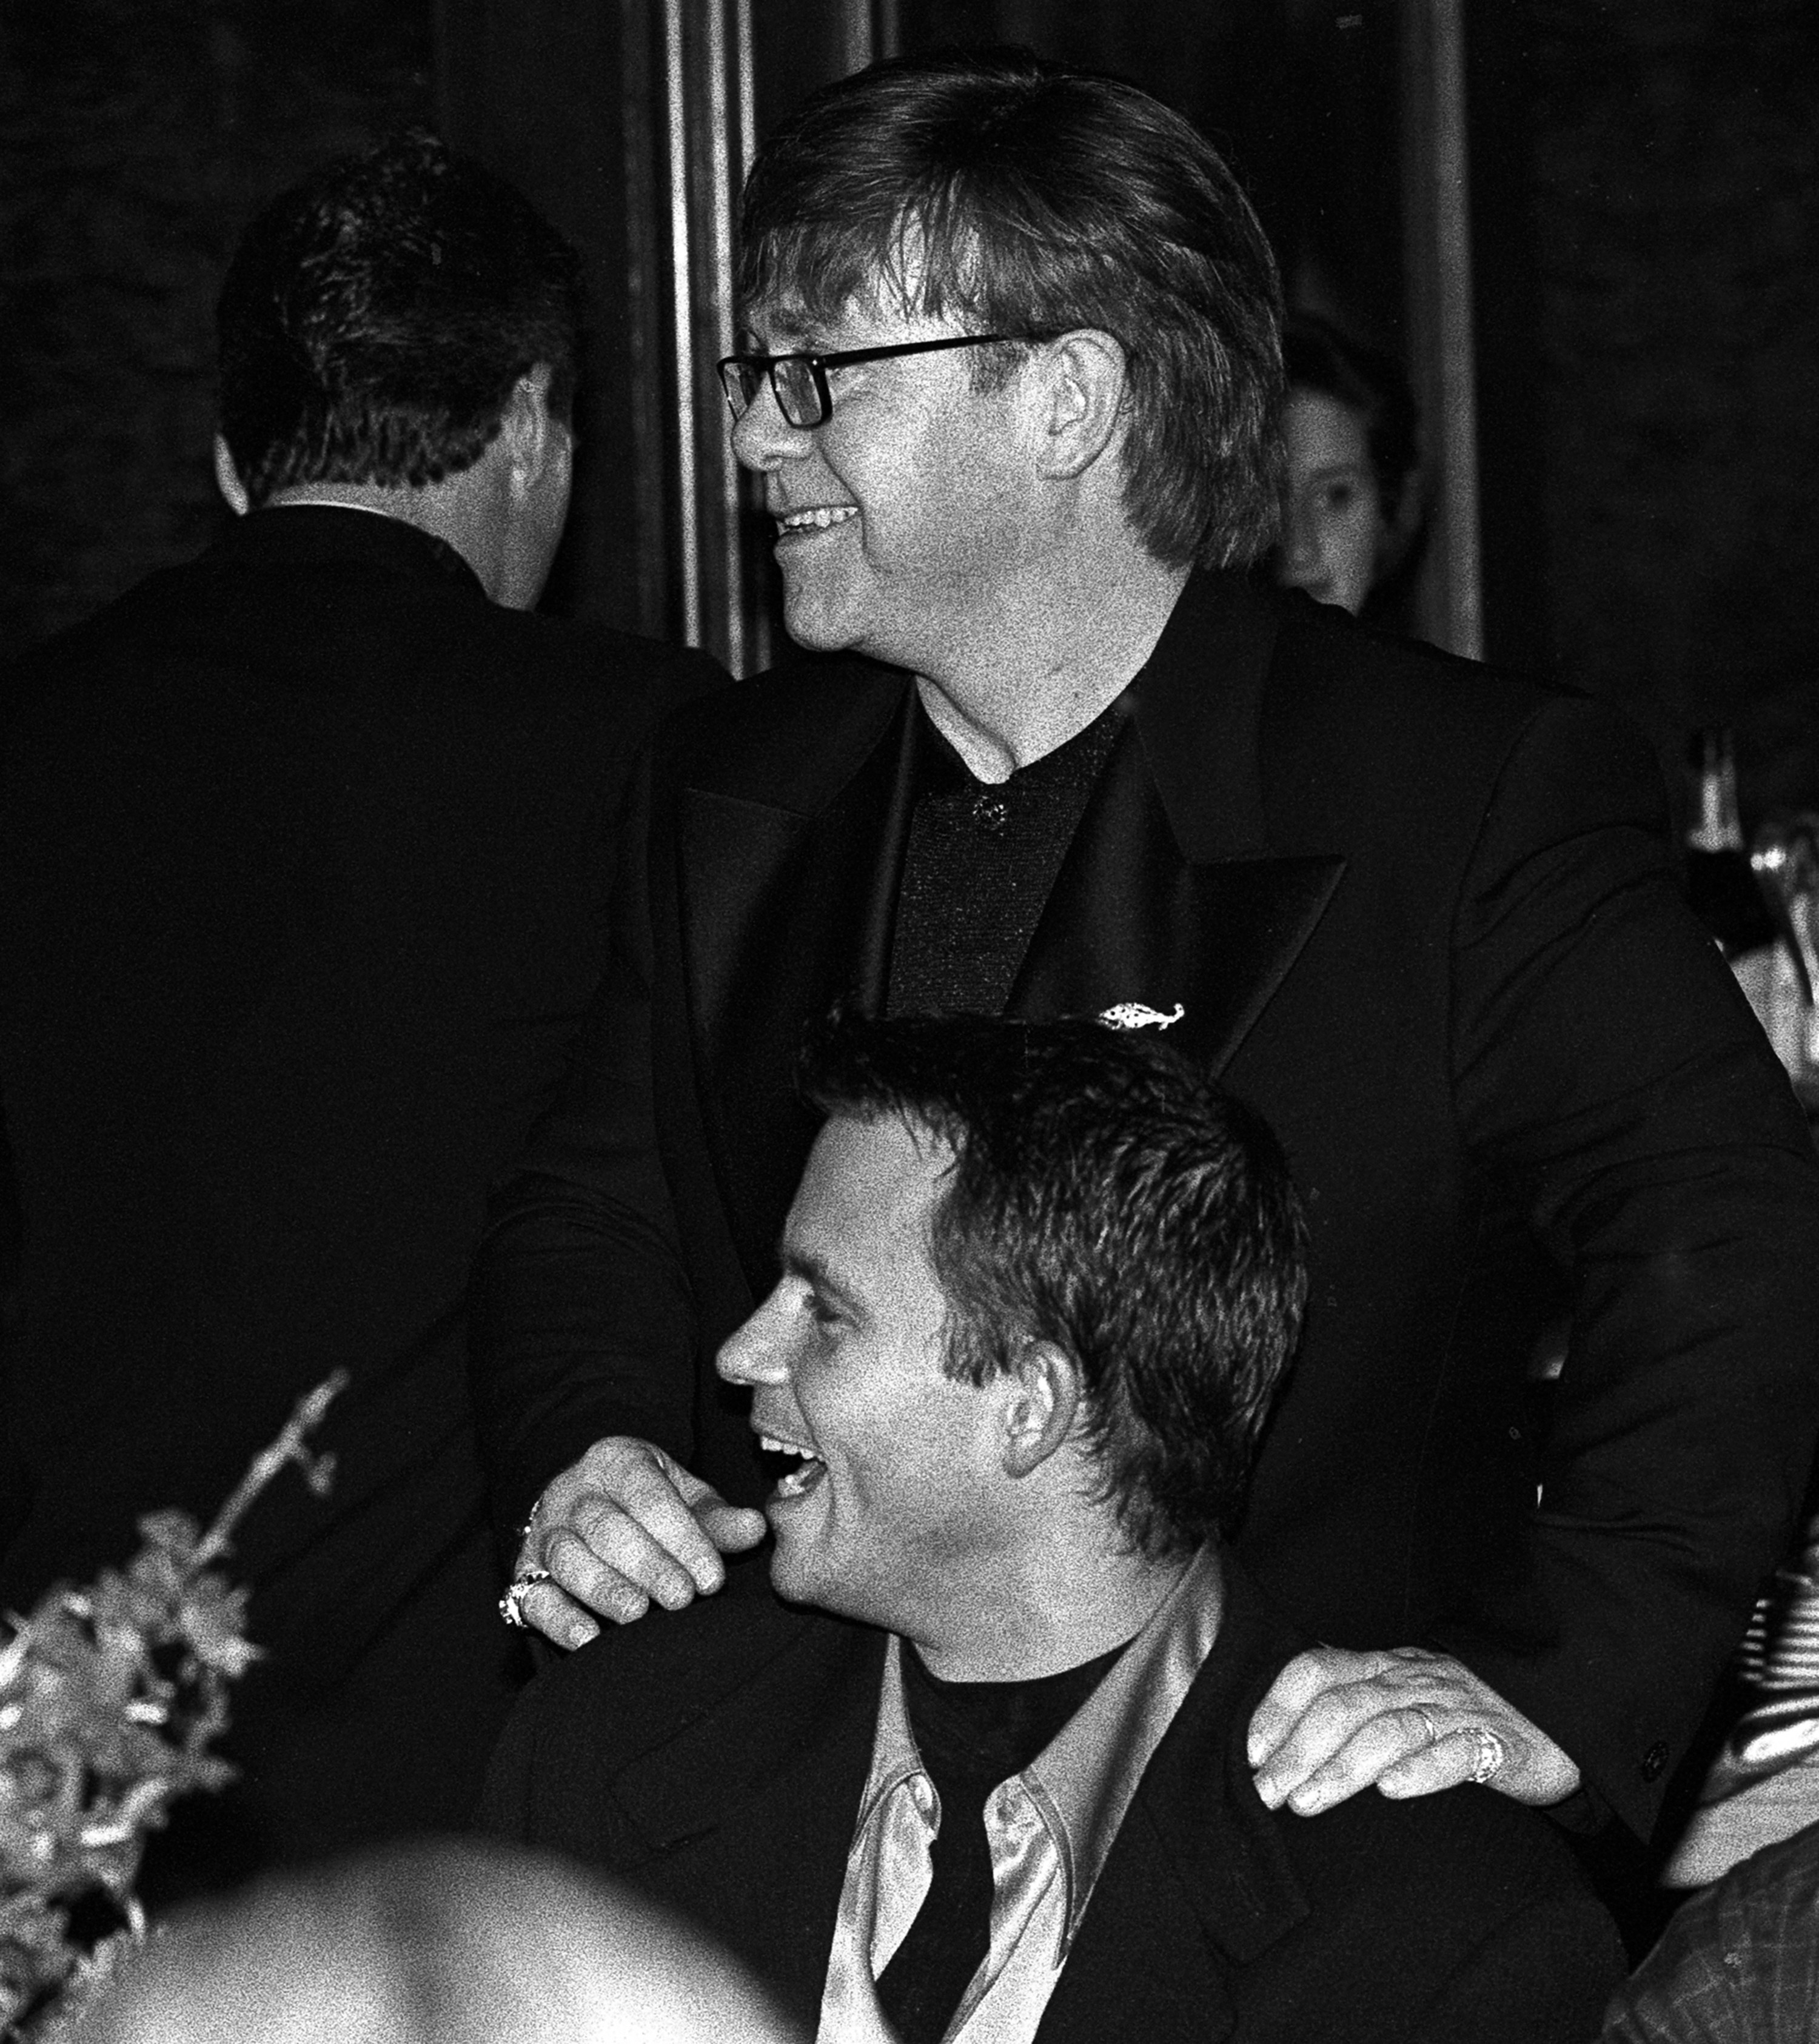 A younger Elton John with his hands on David Furnish's shoulders